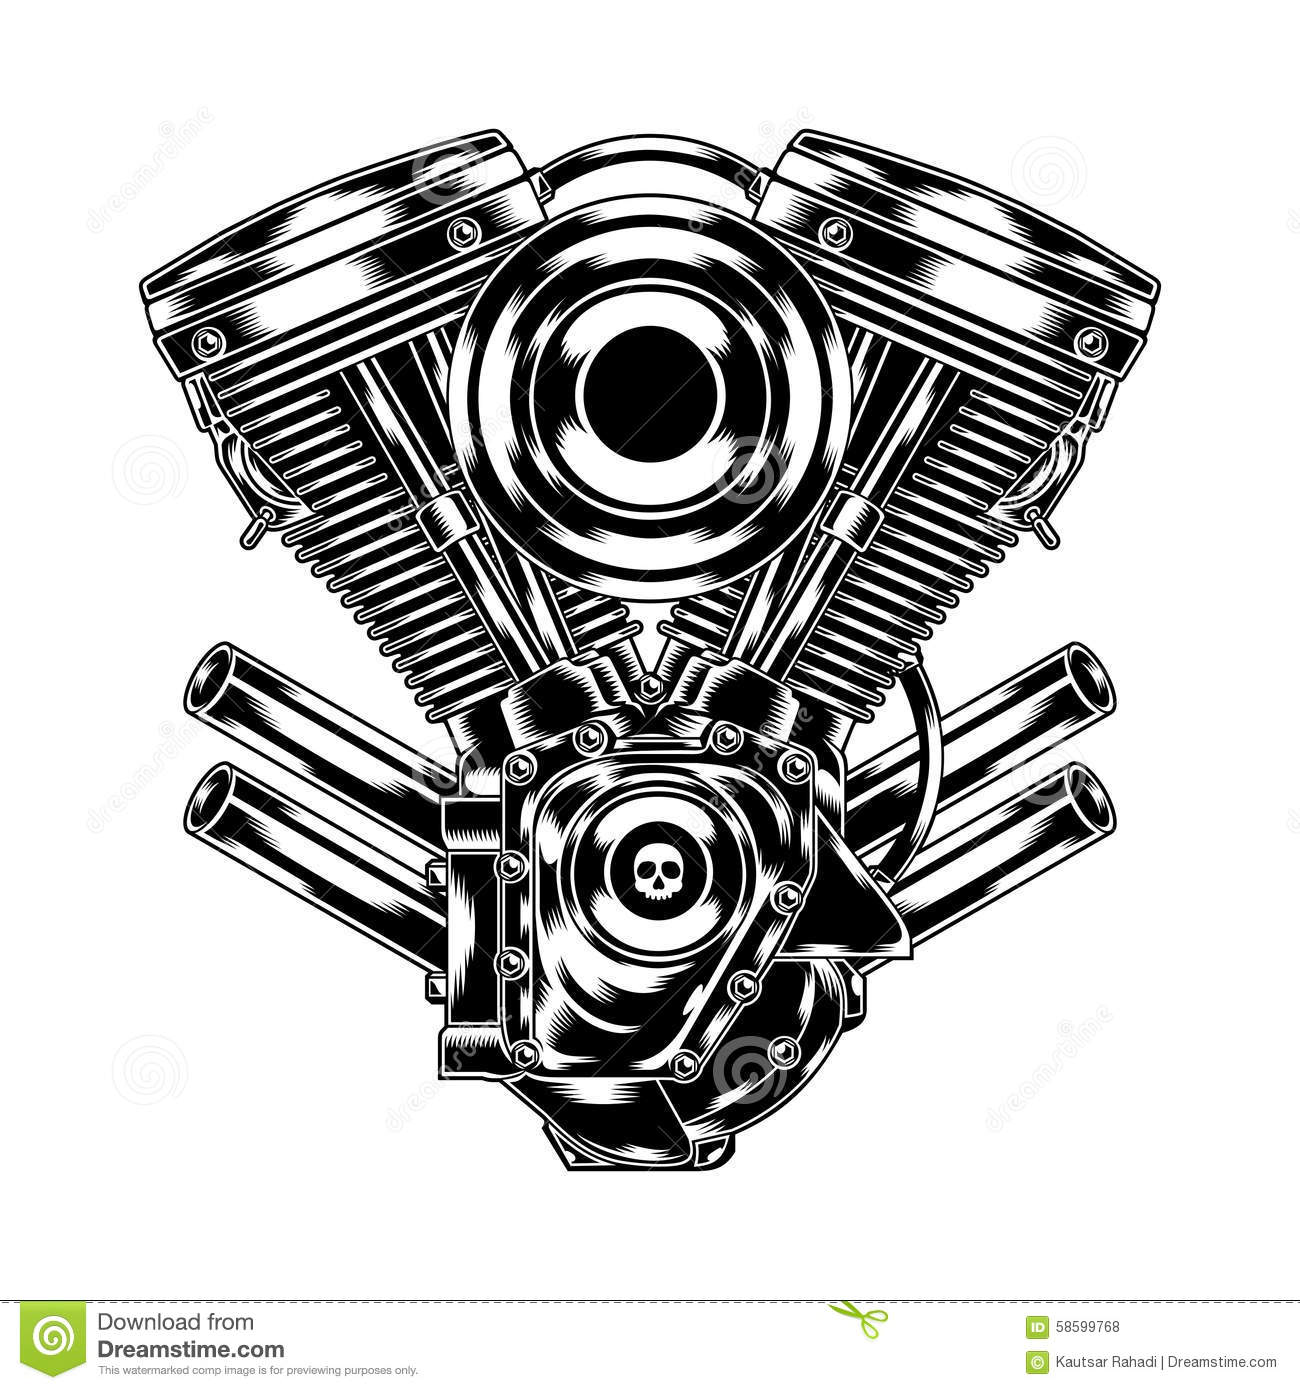 Motorcycle Engine Stock Vector